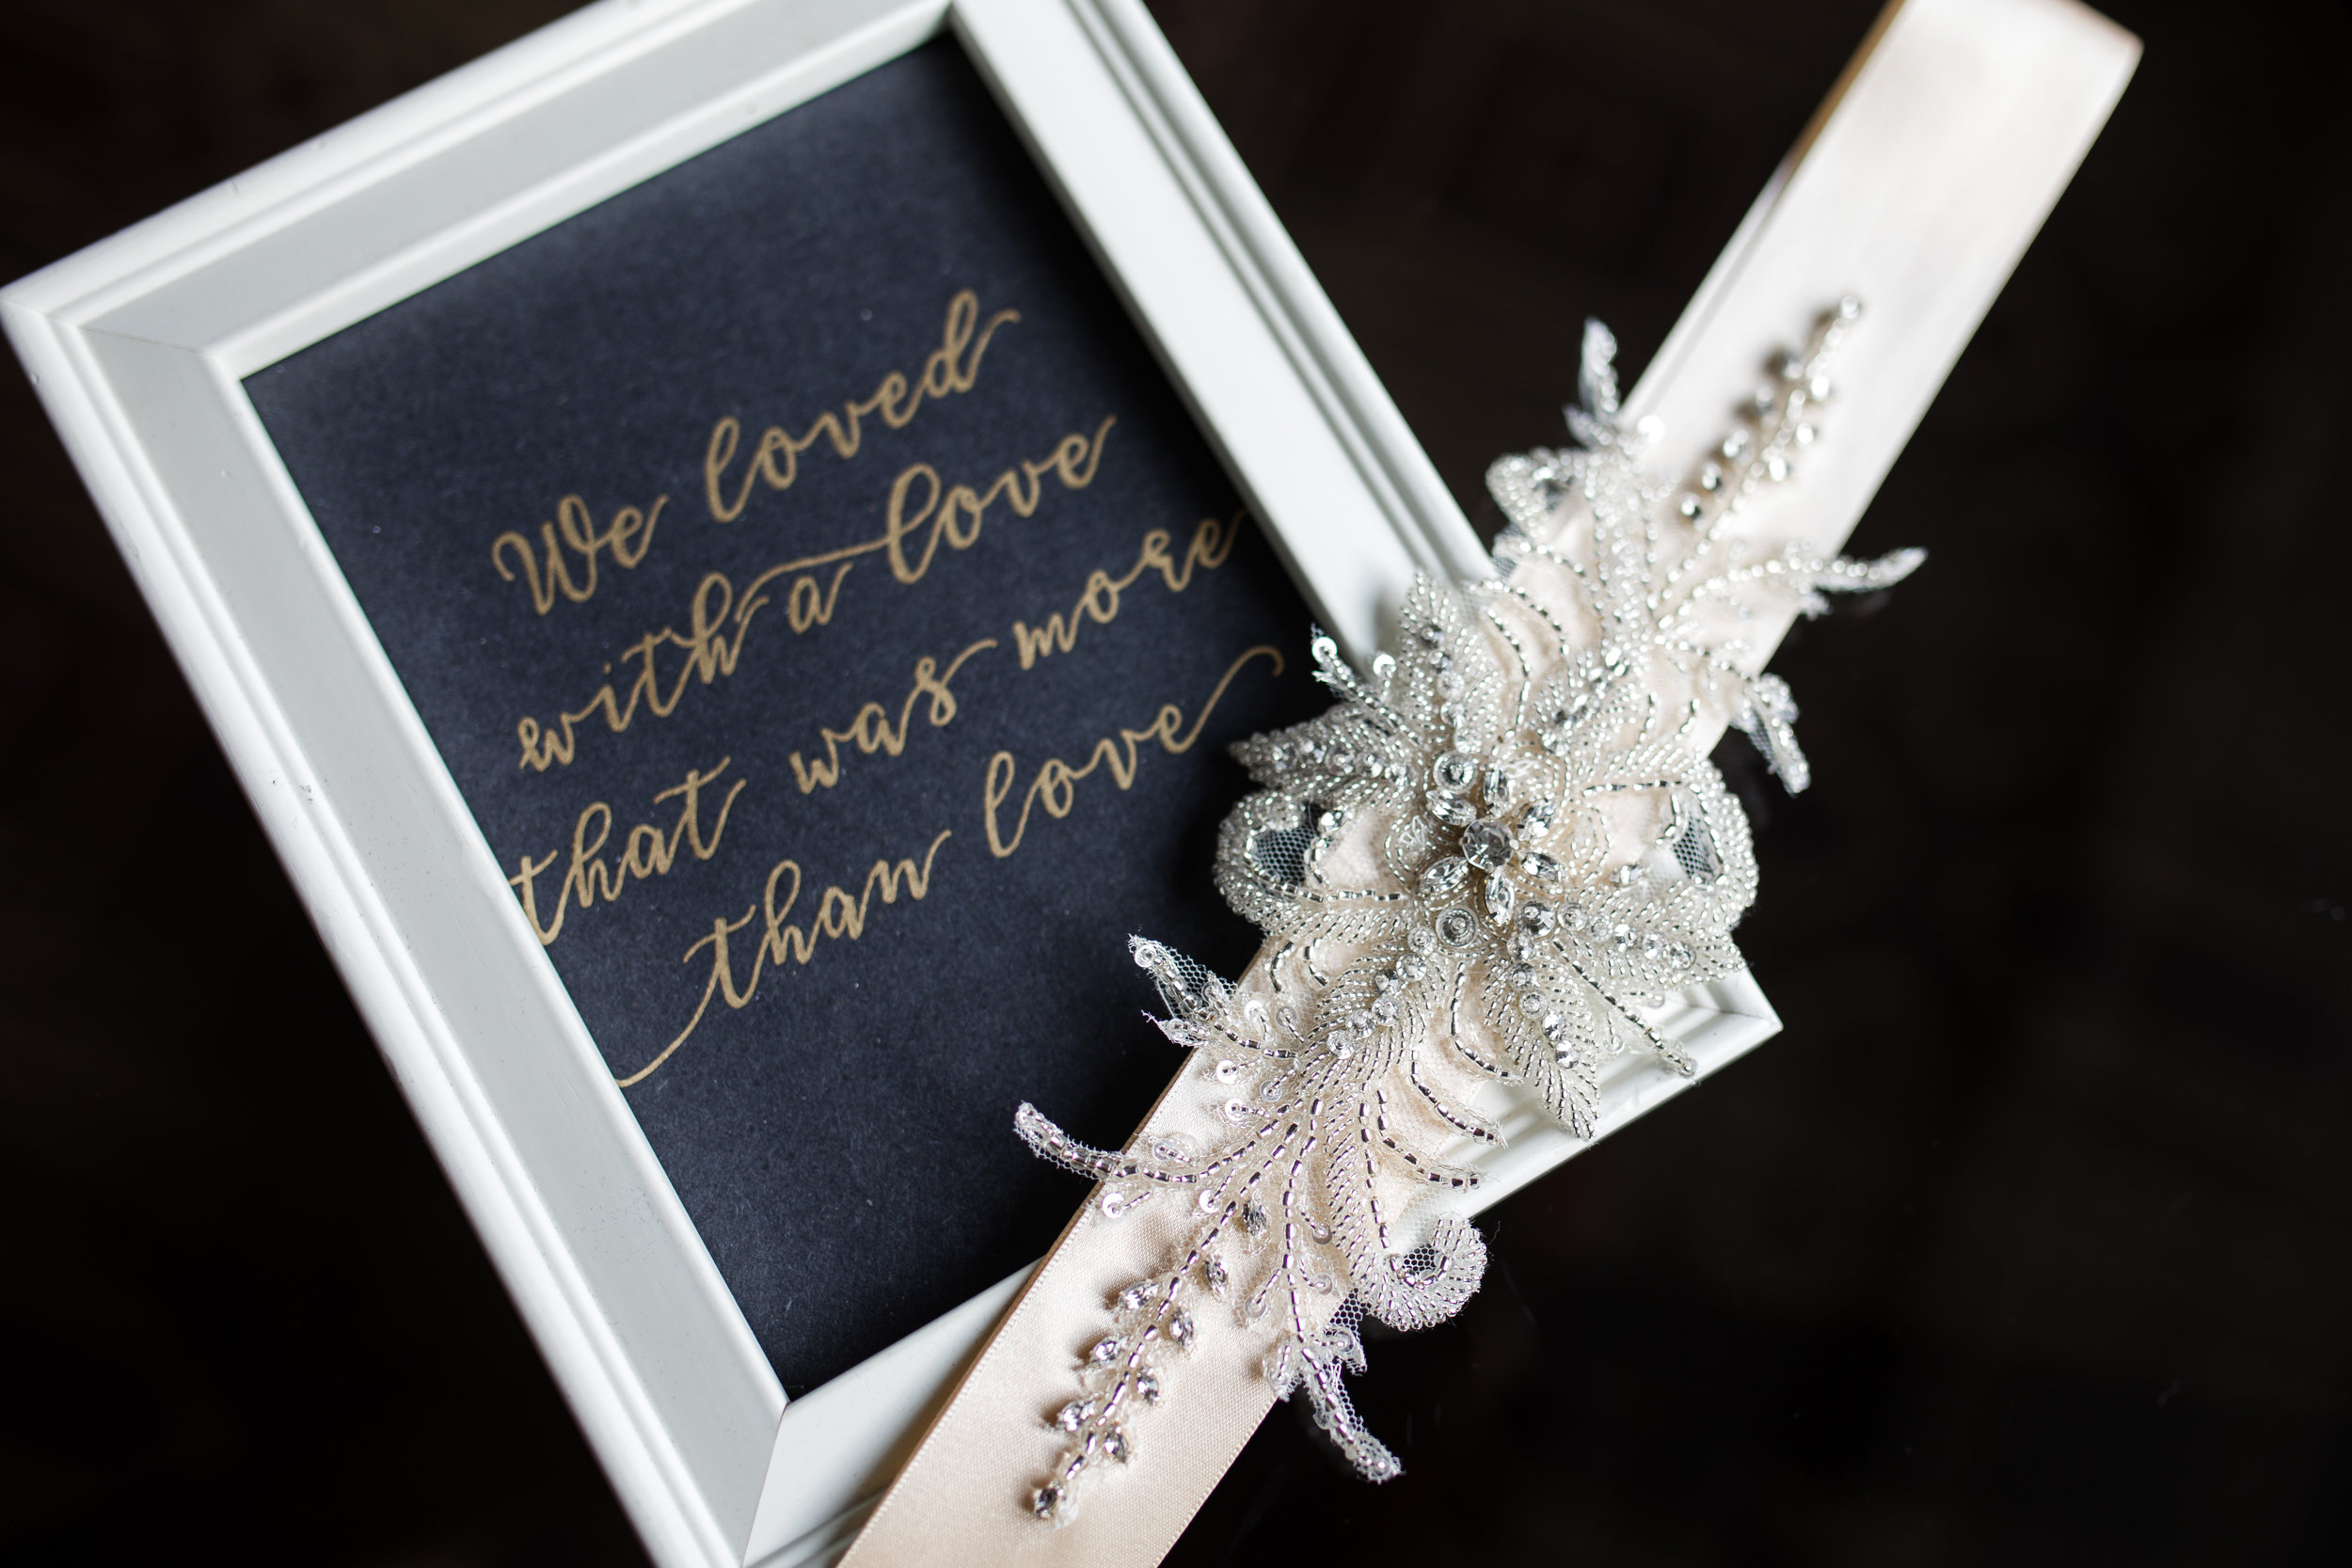 Central PA, York PA, JesSmith Designs, custom, wedding, invitations, bridal, announcements, save the date Souders Photography (19 of 174).jpg